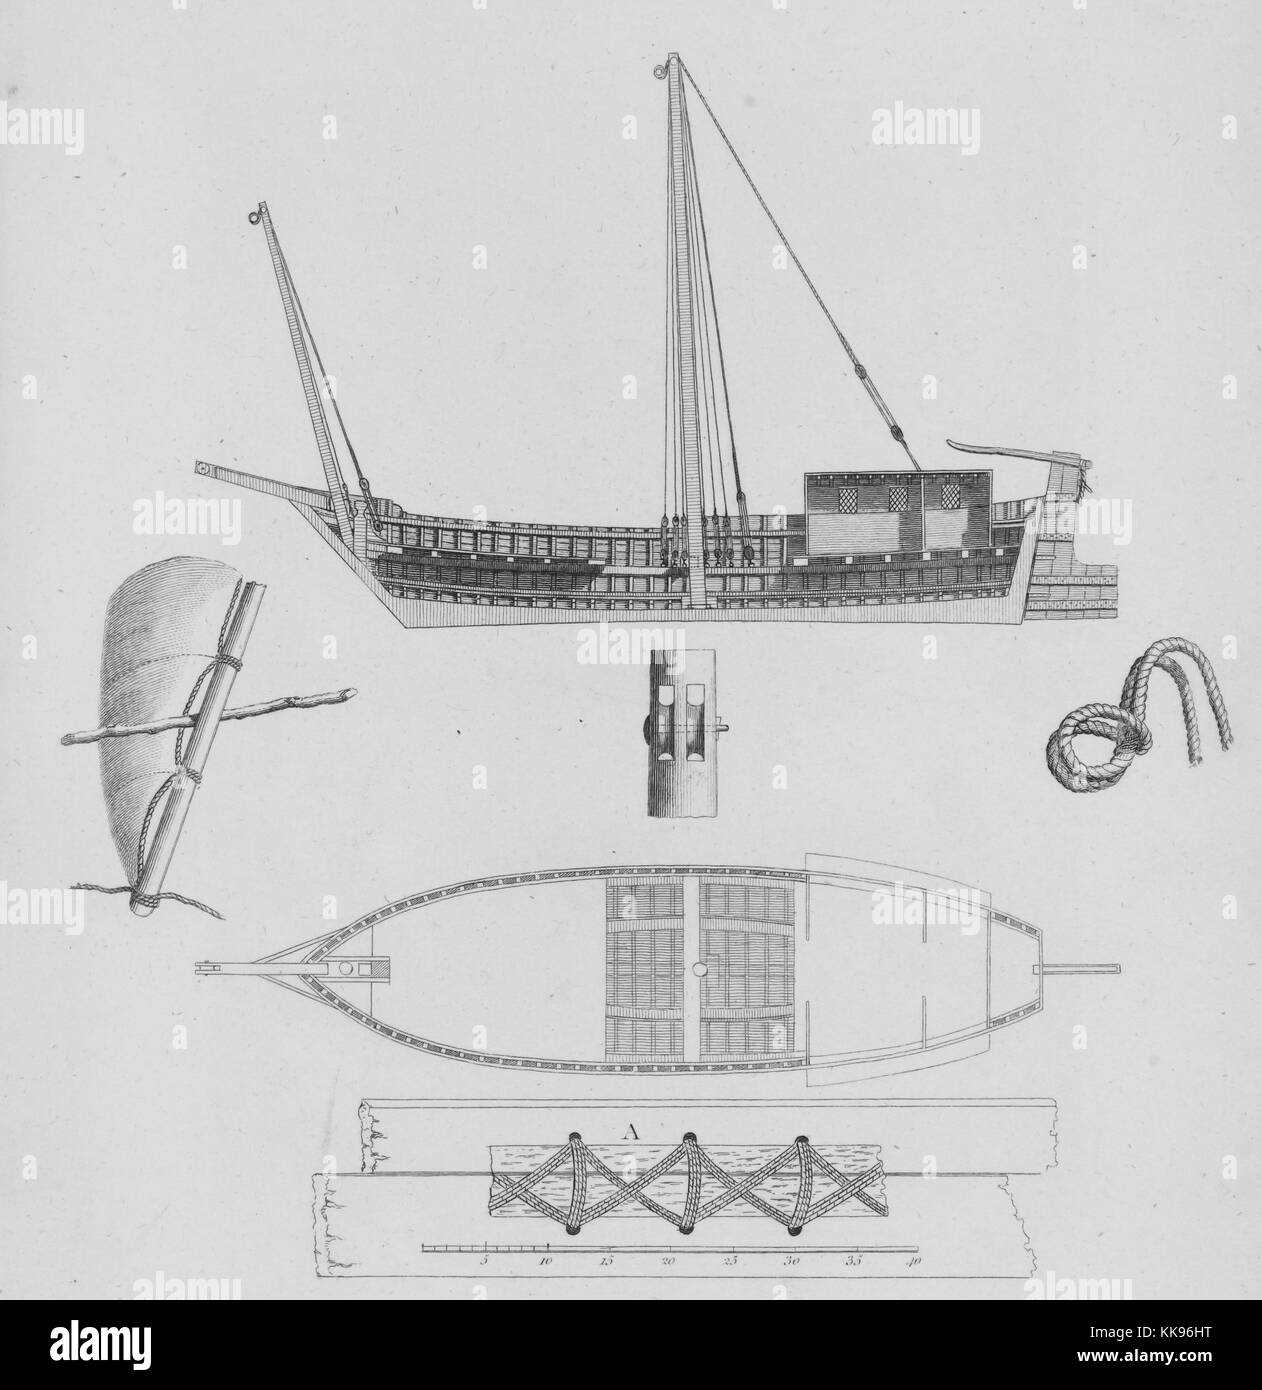 Illustration of different sections and parts of an Egyptian Canja boat, depicting how the planks are sewed together - Stock Image